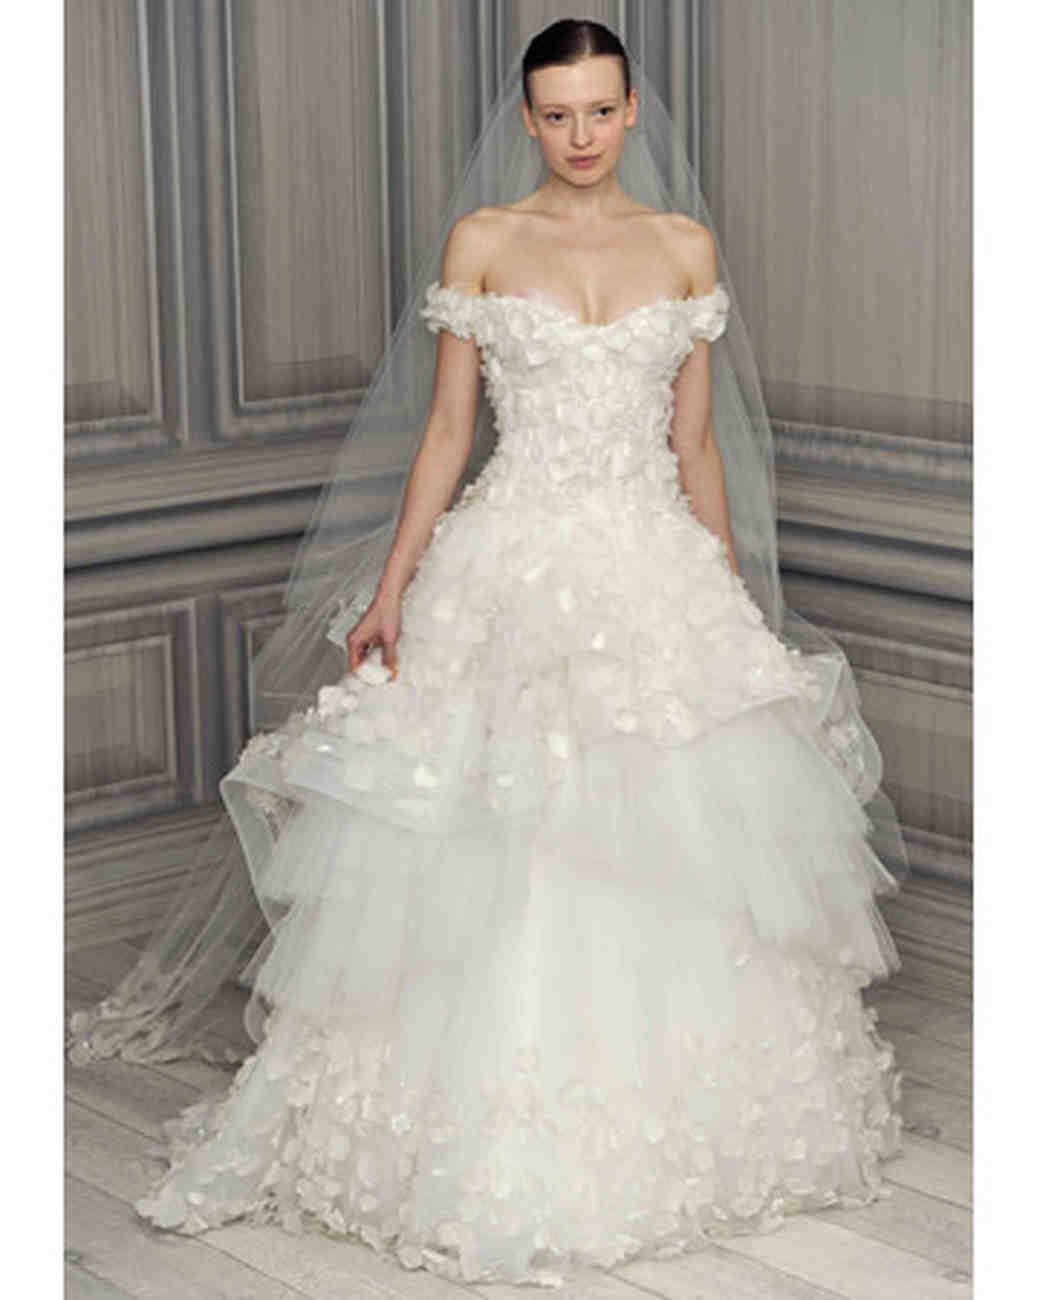 Monique Lhuillier, Spring 2012 Collection | Martha Stewart Weddings